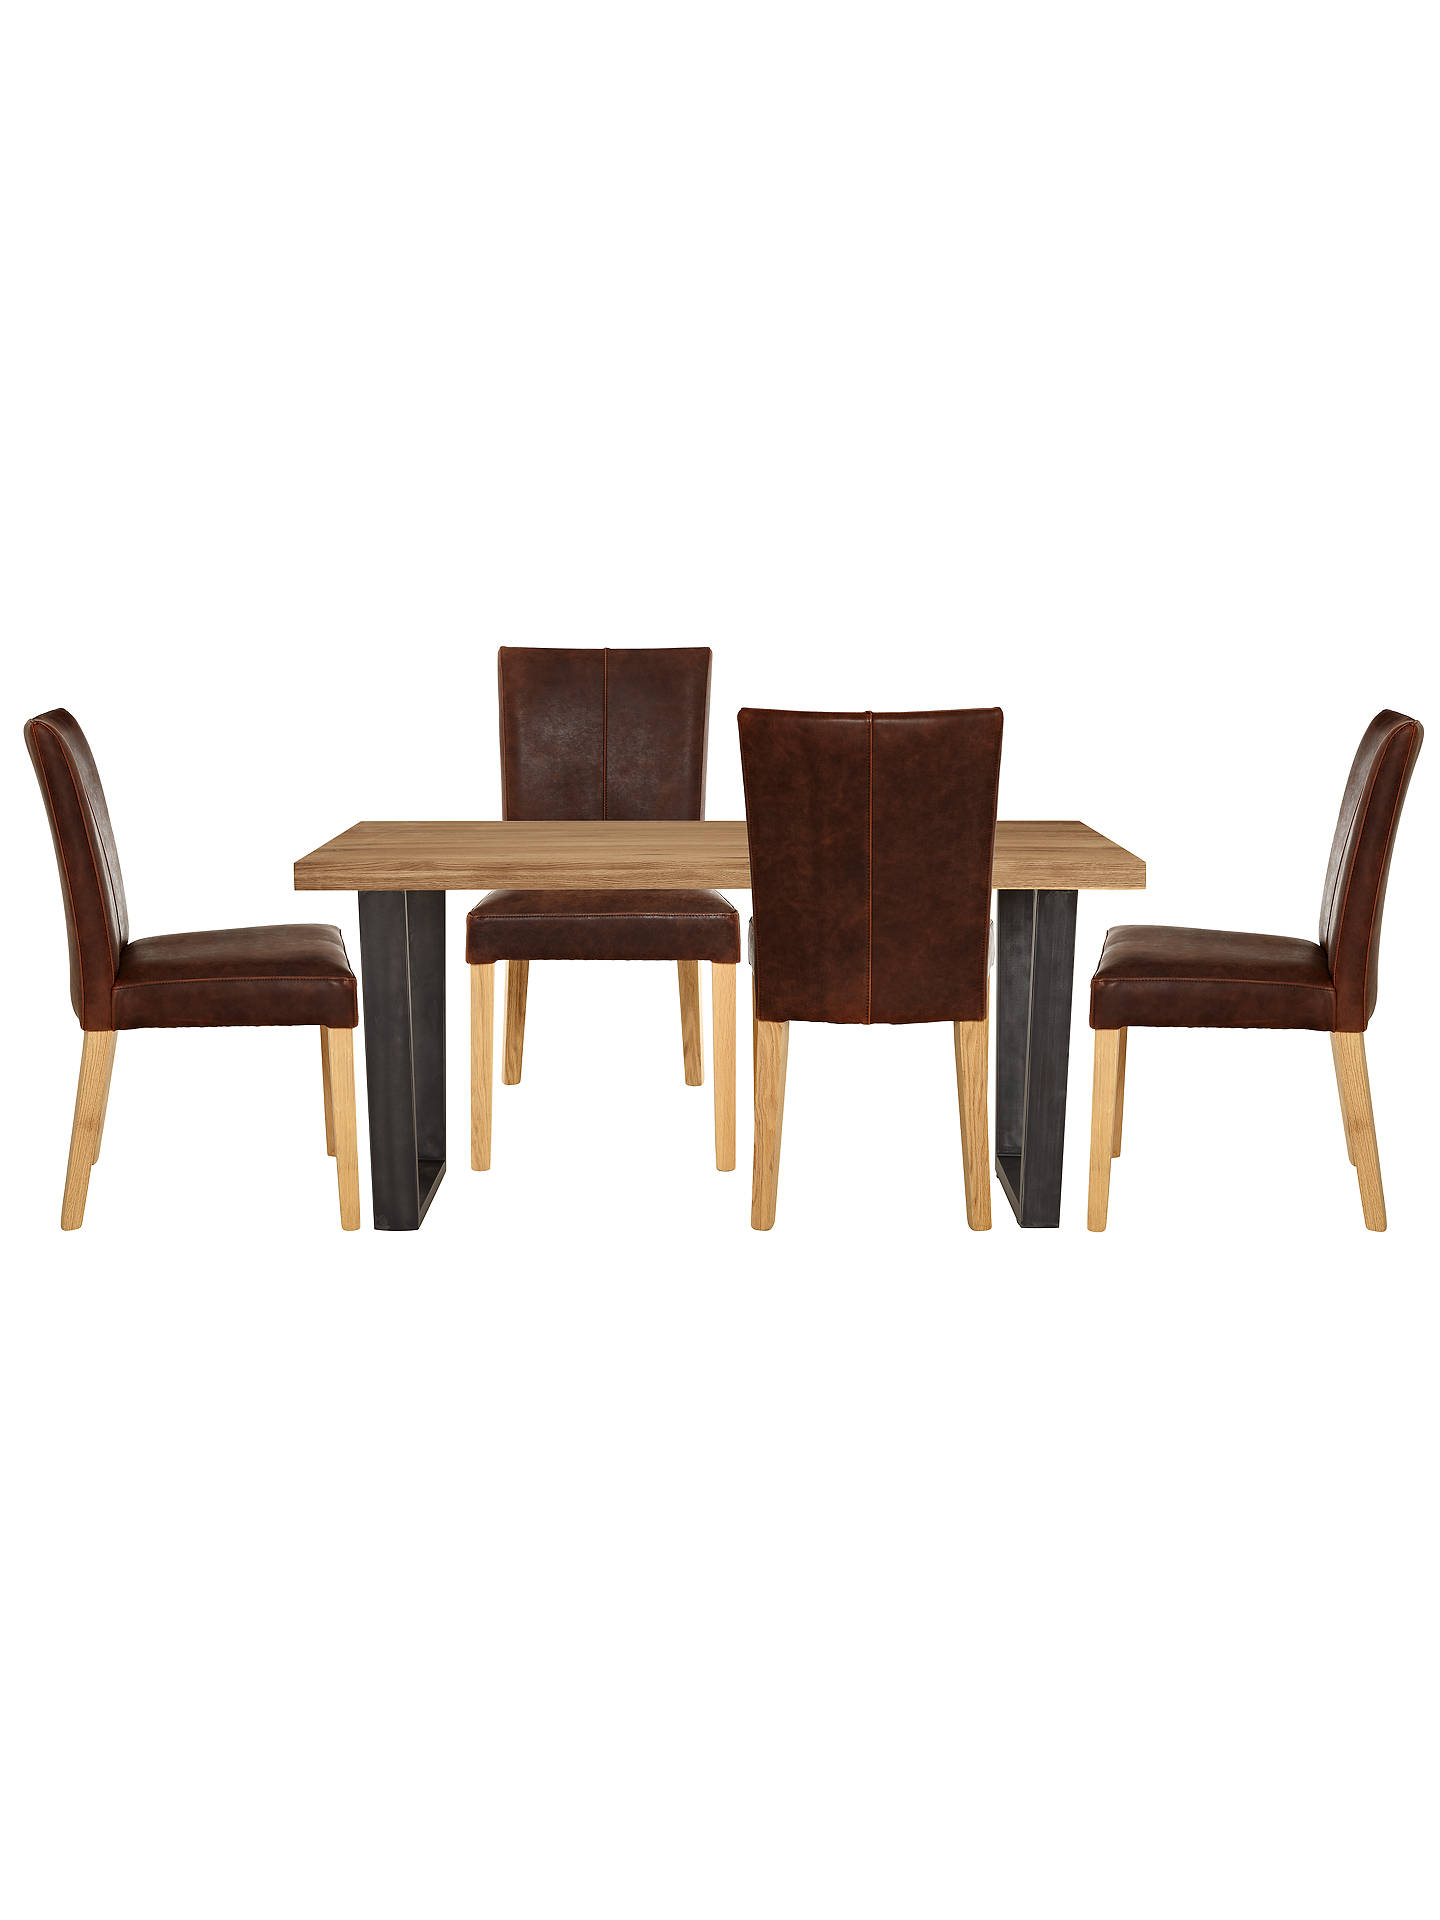 BuyJohn Lewis & Partners Calia 6 Seater Dining Table, Oak Online at johnlewis.com